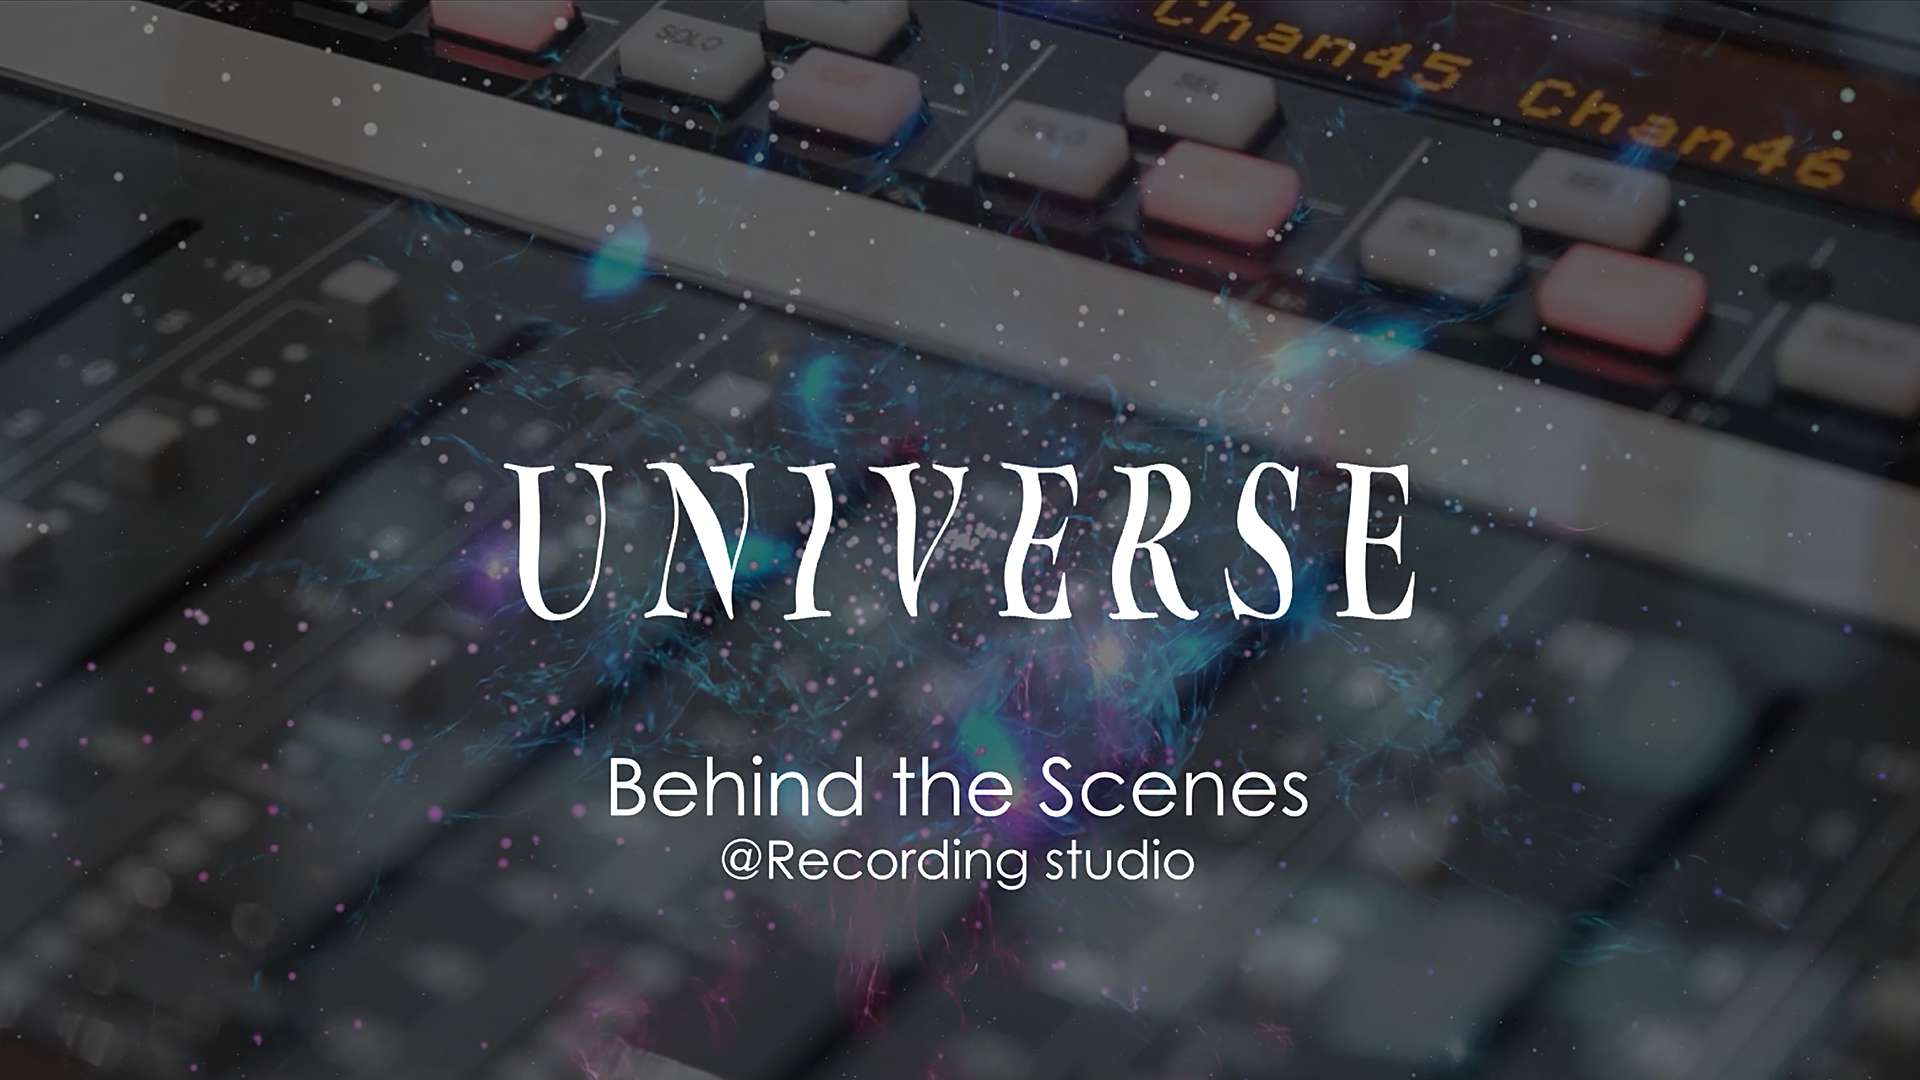 UNIVERSE Behind the Scenes